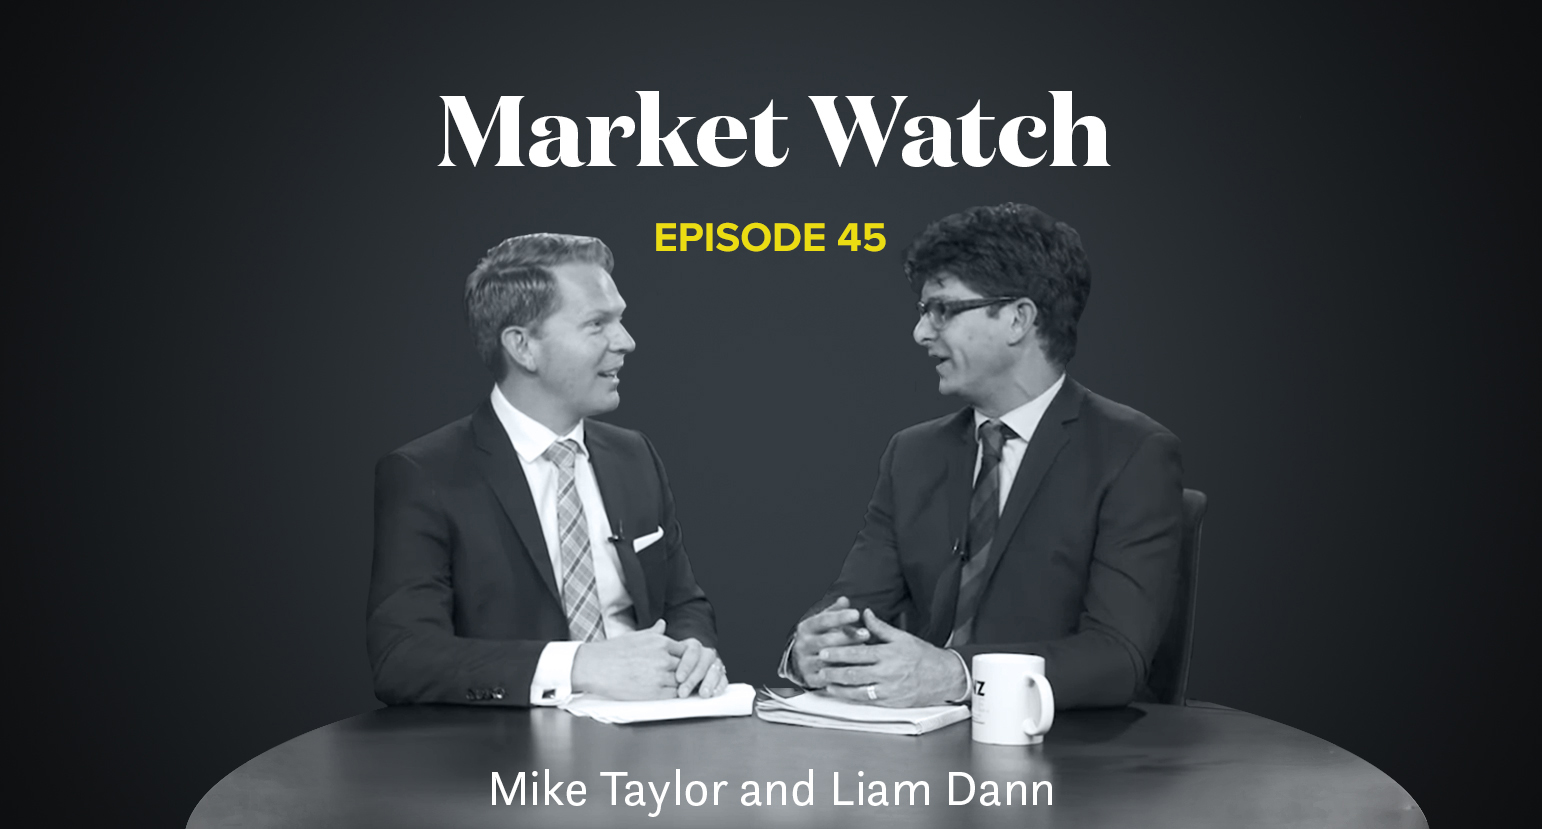 Market-Watch-Video-and-EP45_Digital.jpg